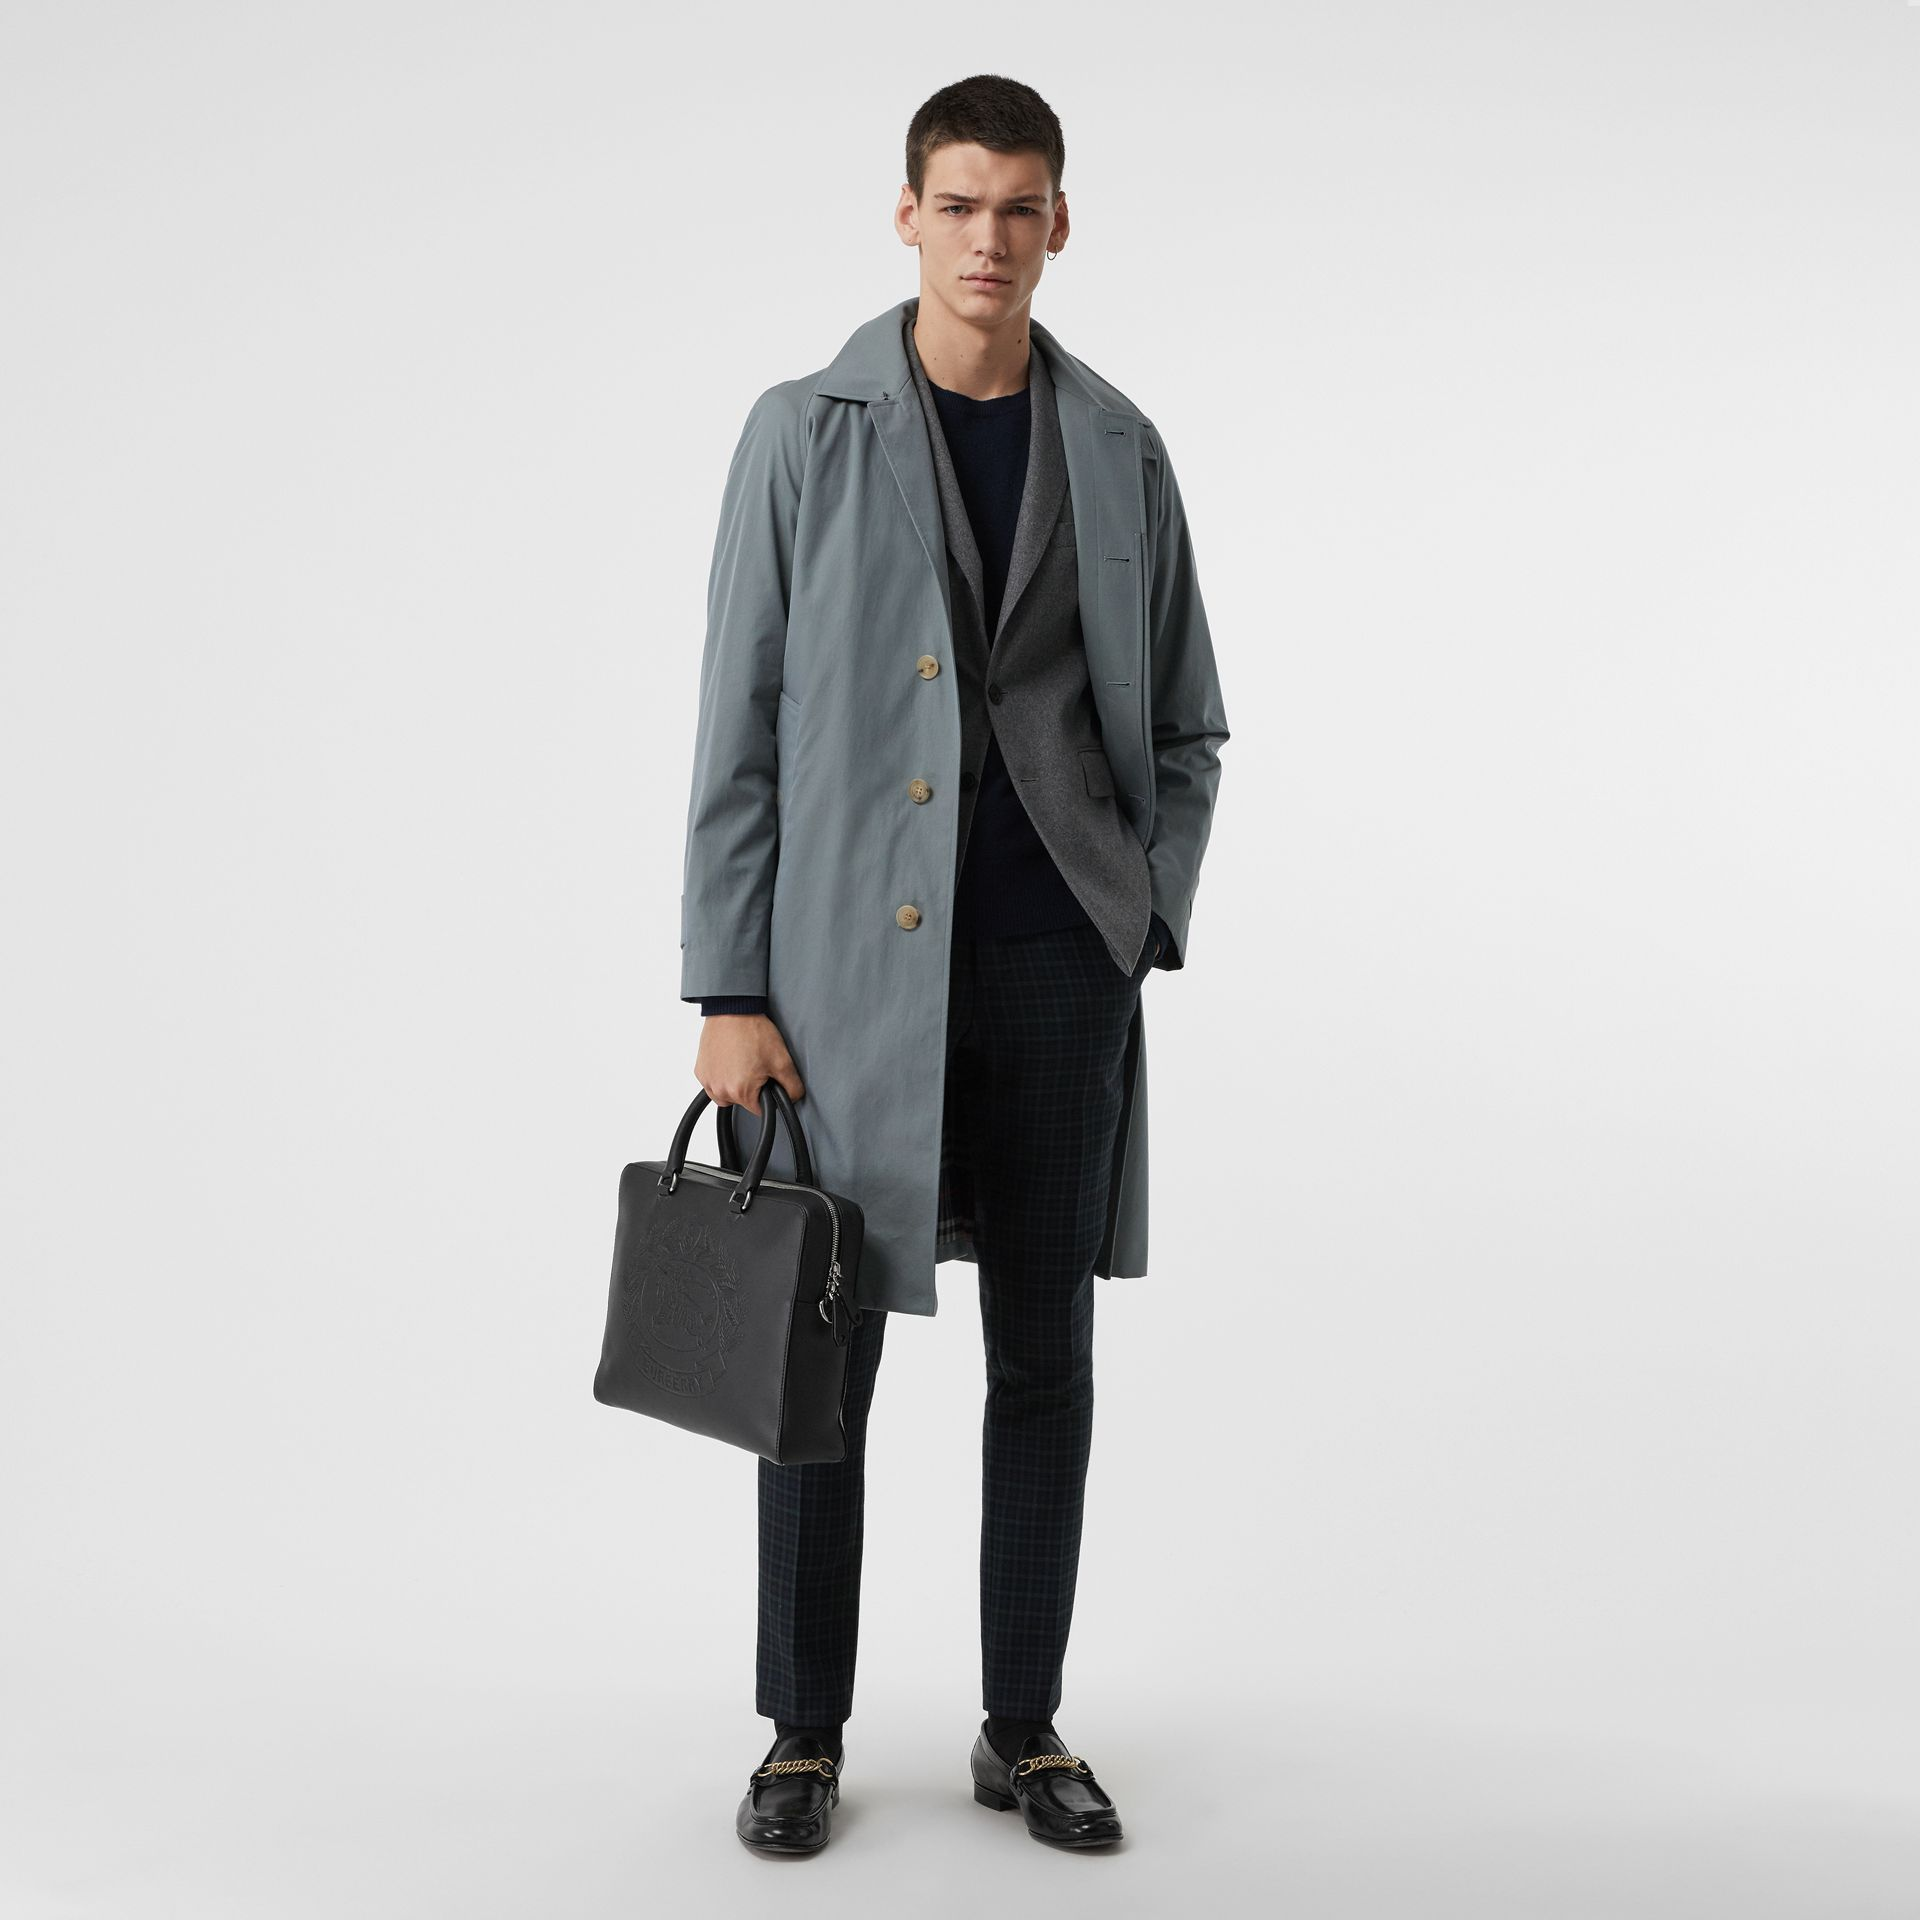 Attaché-case en cuir avec écusson estampé (Noir) - Homme | Burberry Canada - photo de la galerie 2